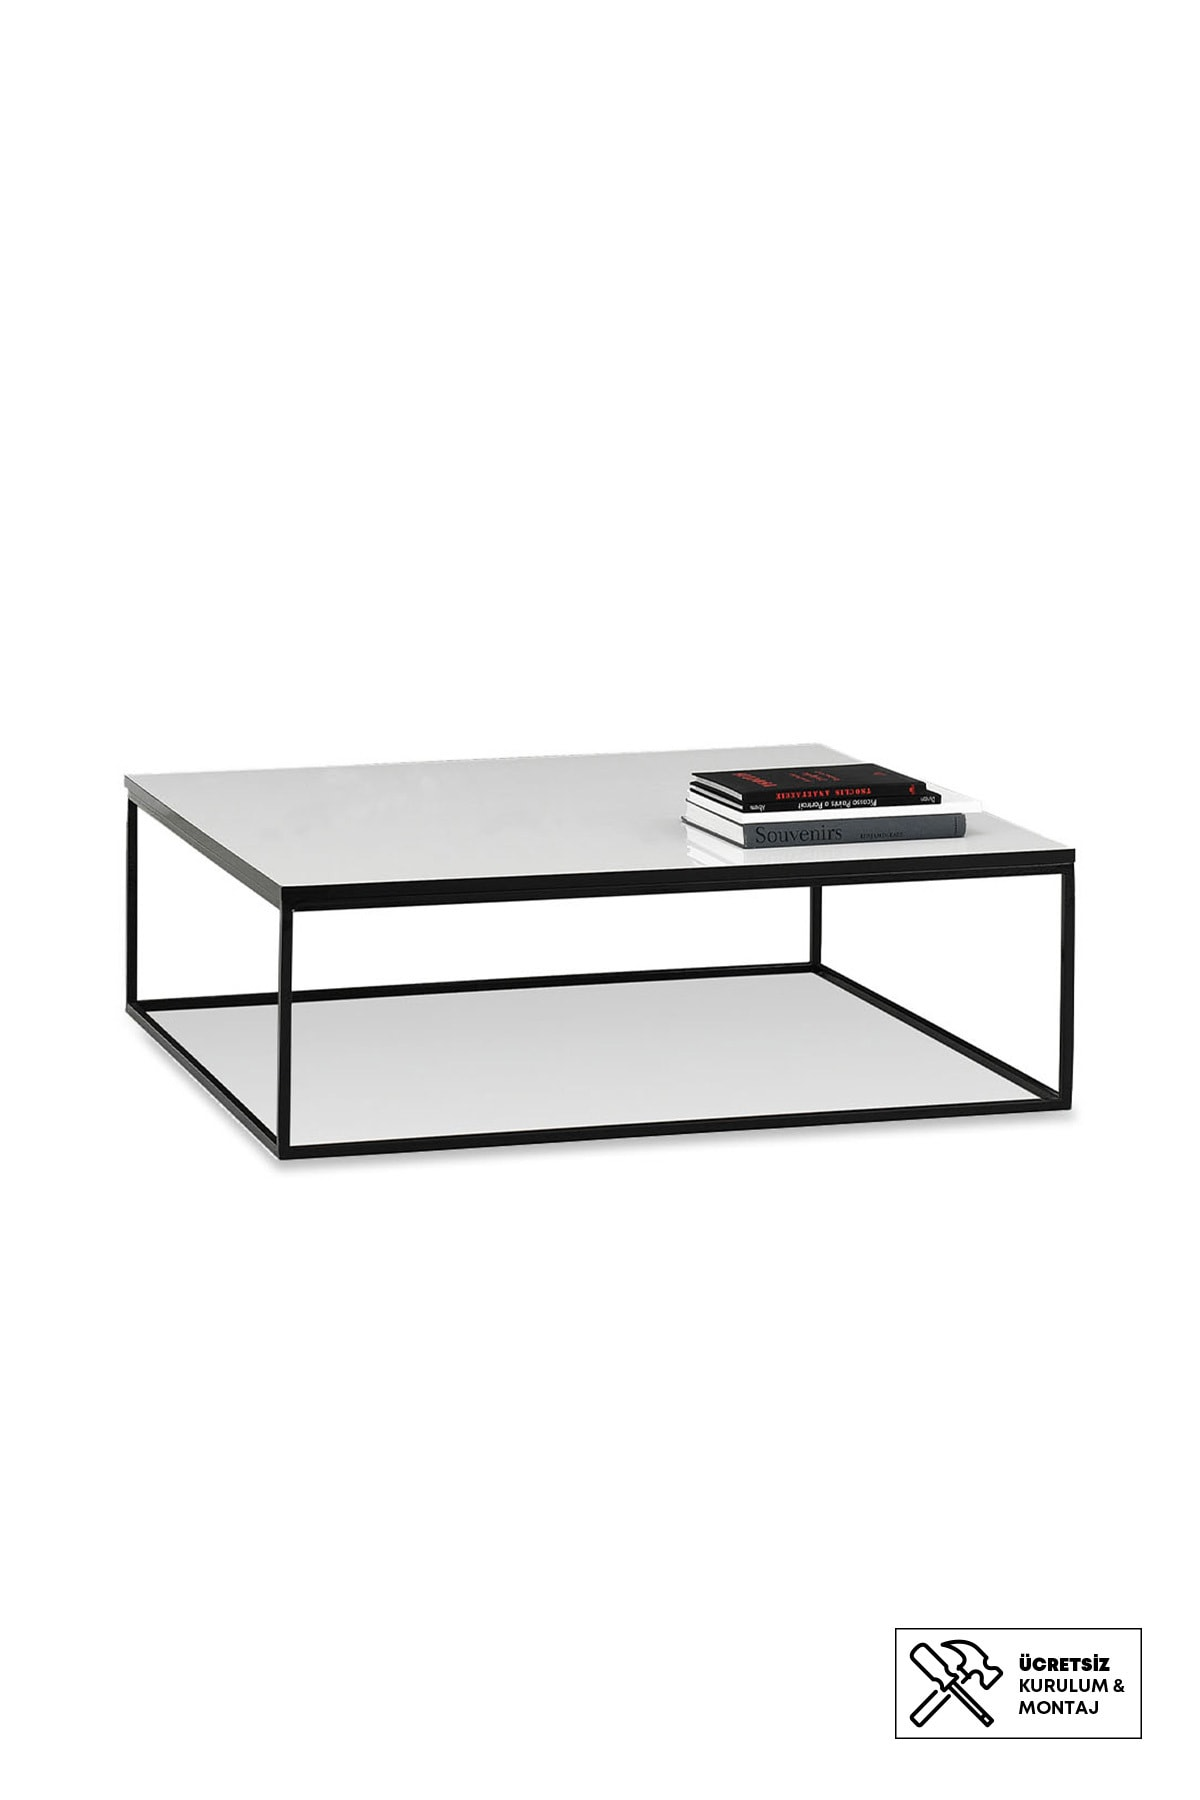 Enza Home CRYSTAL Kare Orta Sehpa (110x110 cm)